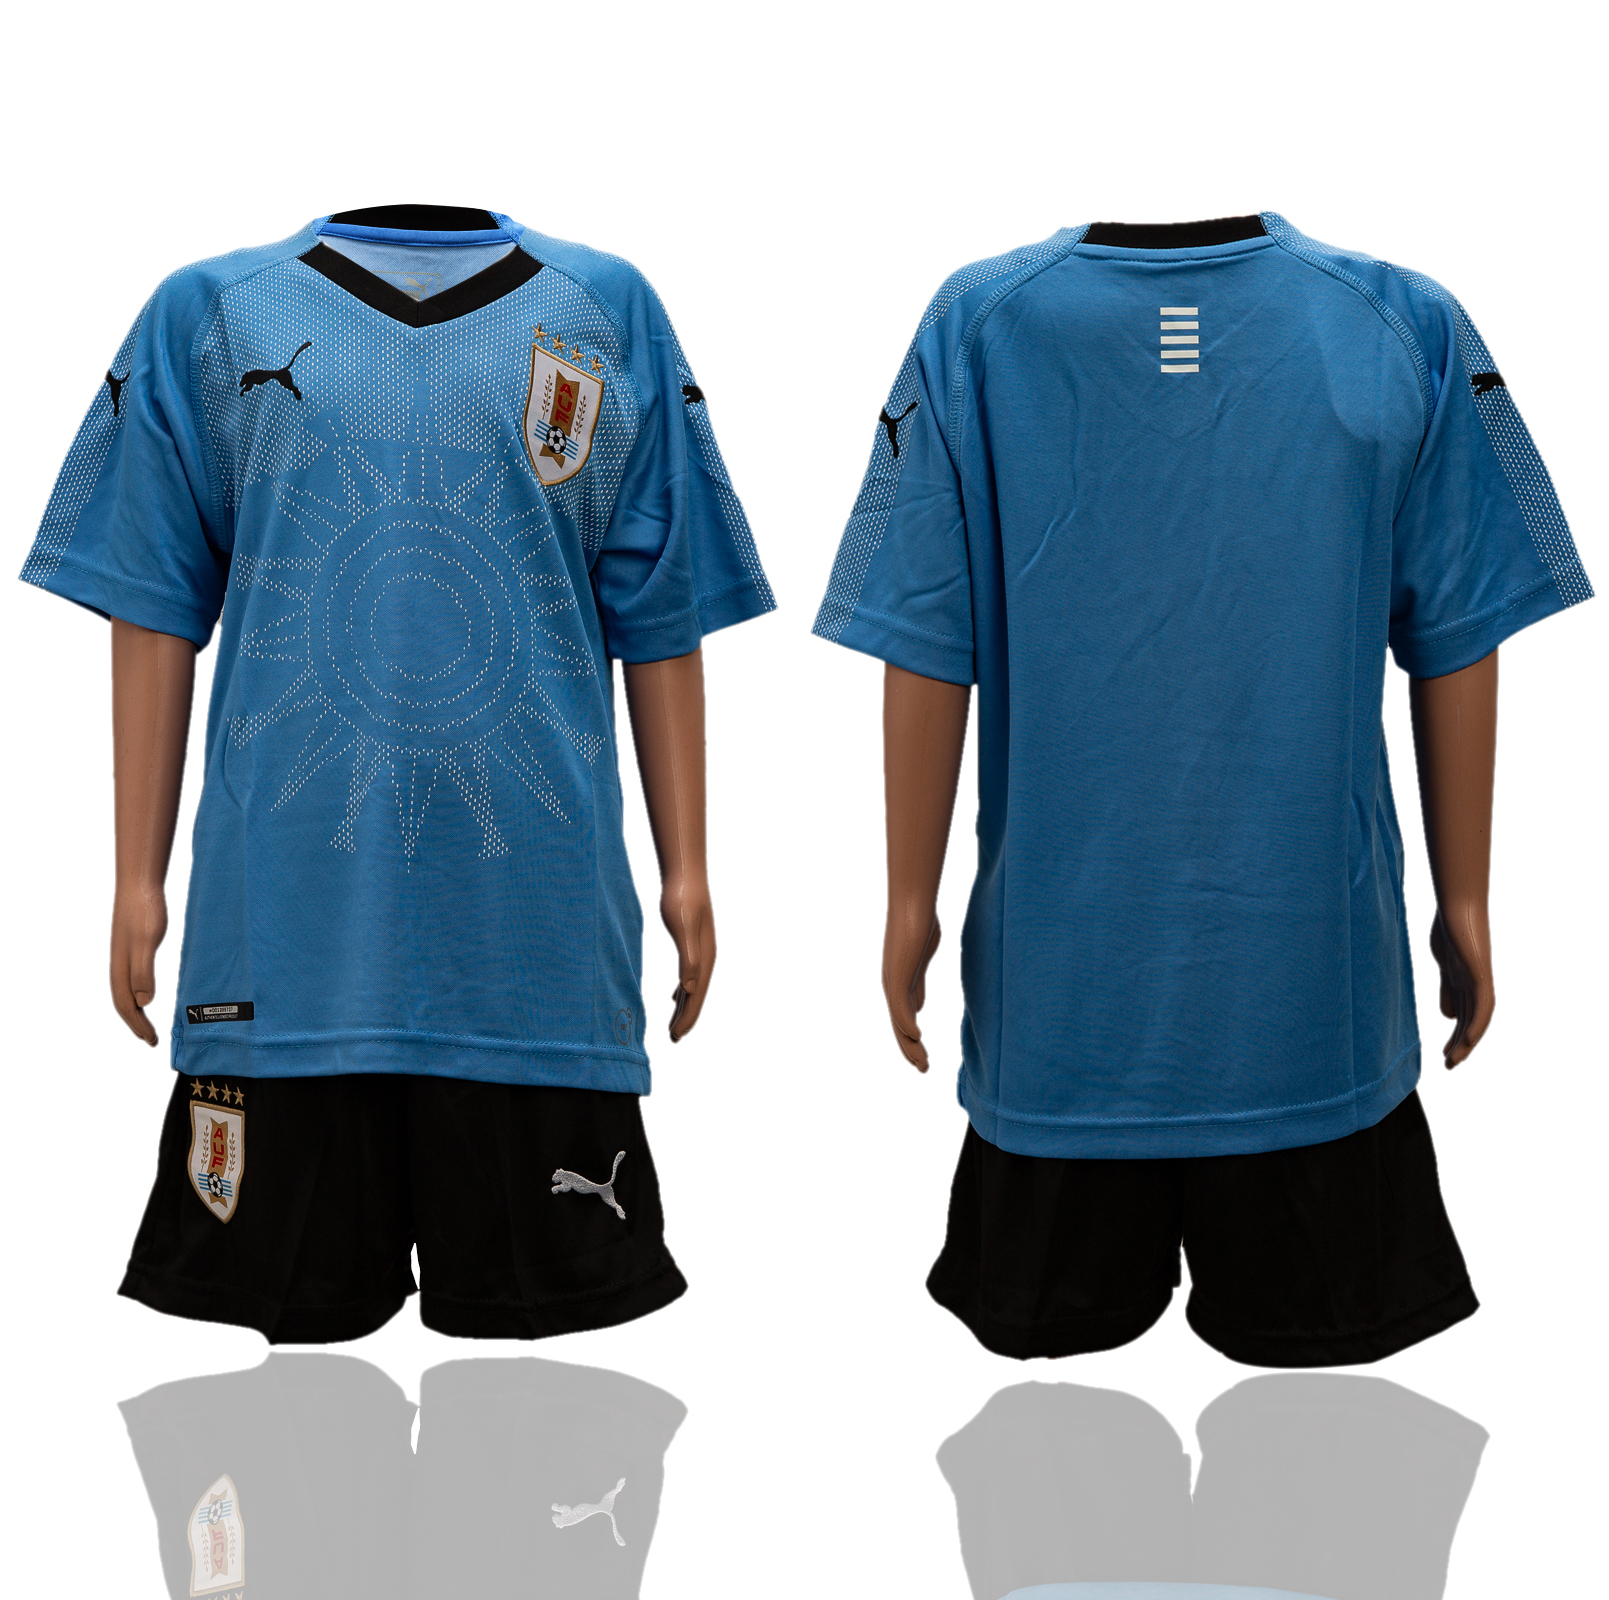 Uruguay Home Youth 2018 FIFA World Cup Soccer Jersey